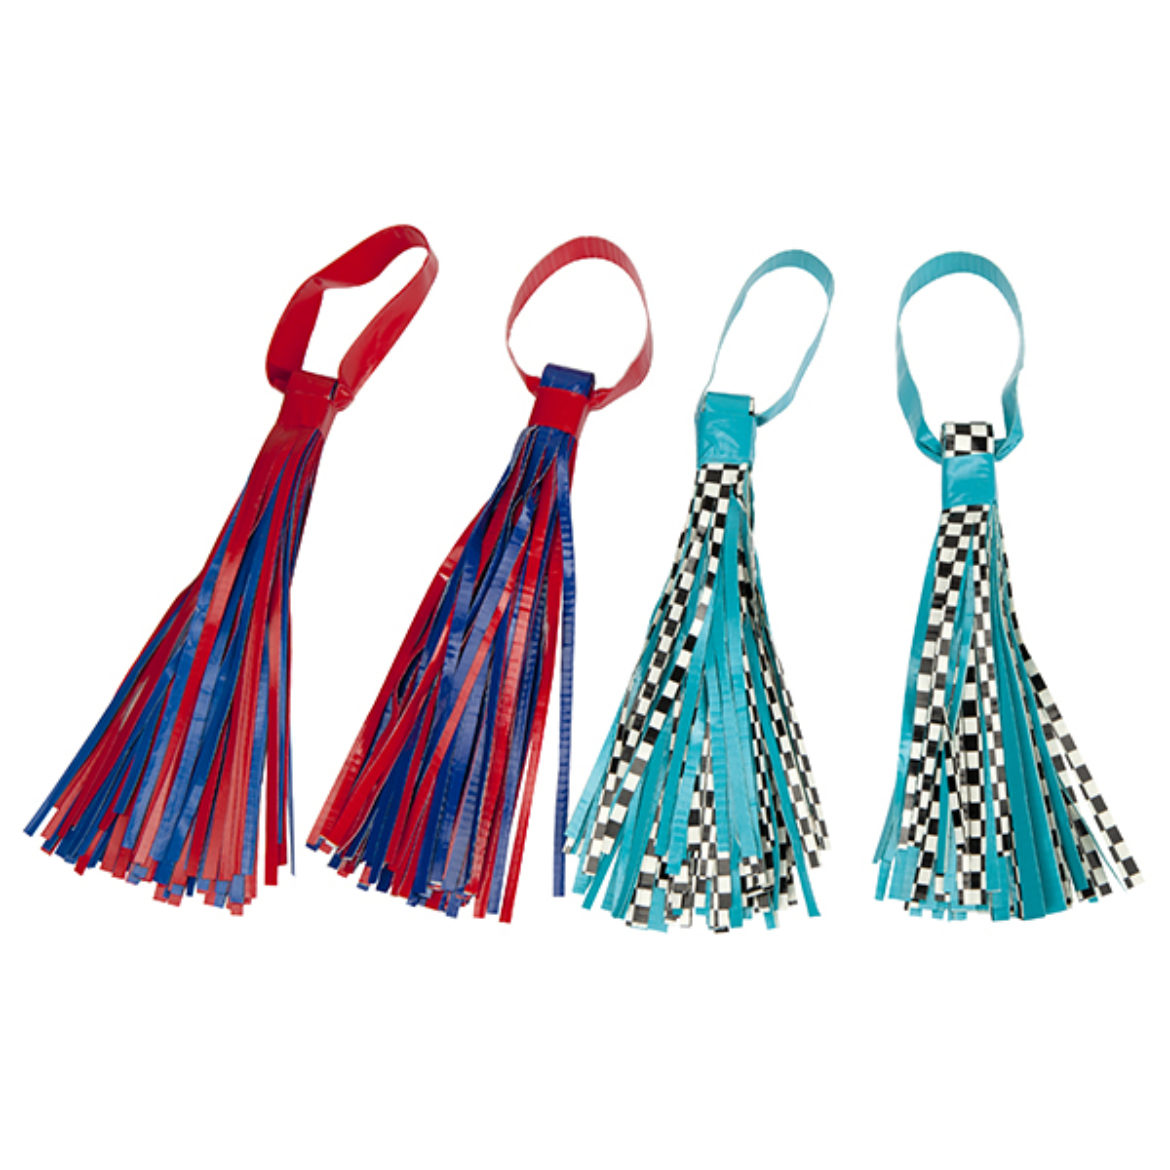 two matching pairs of Duck Tape Pom Poms using different colors of Duck Tape